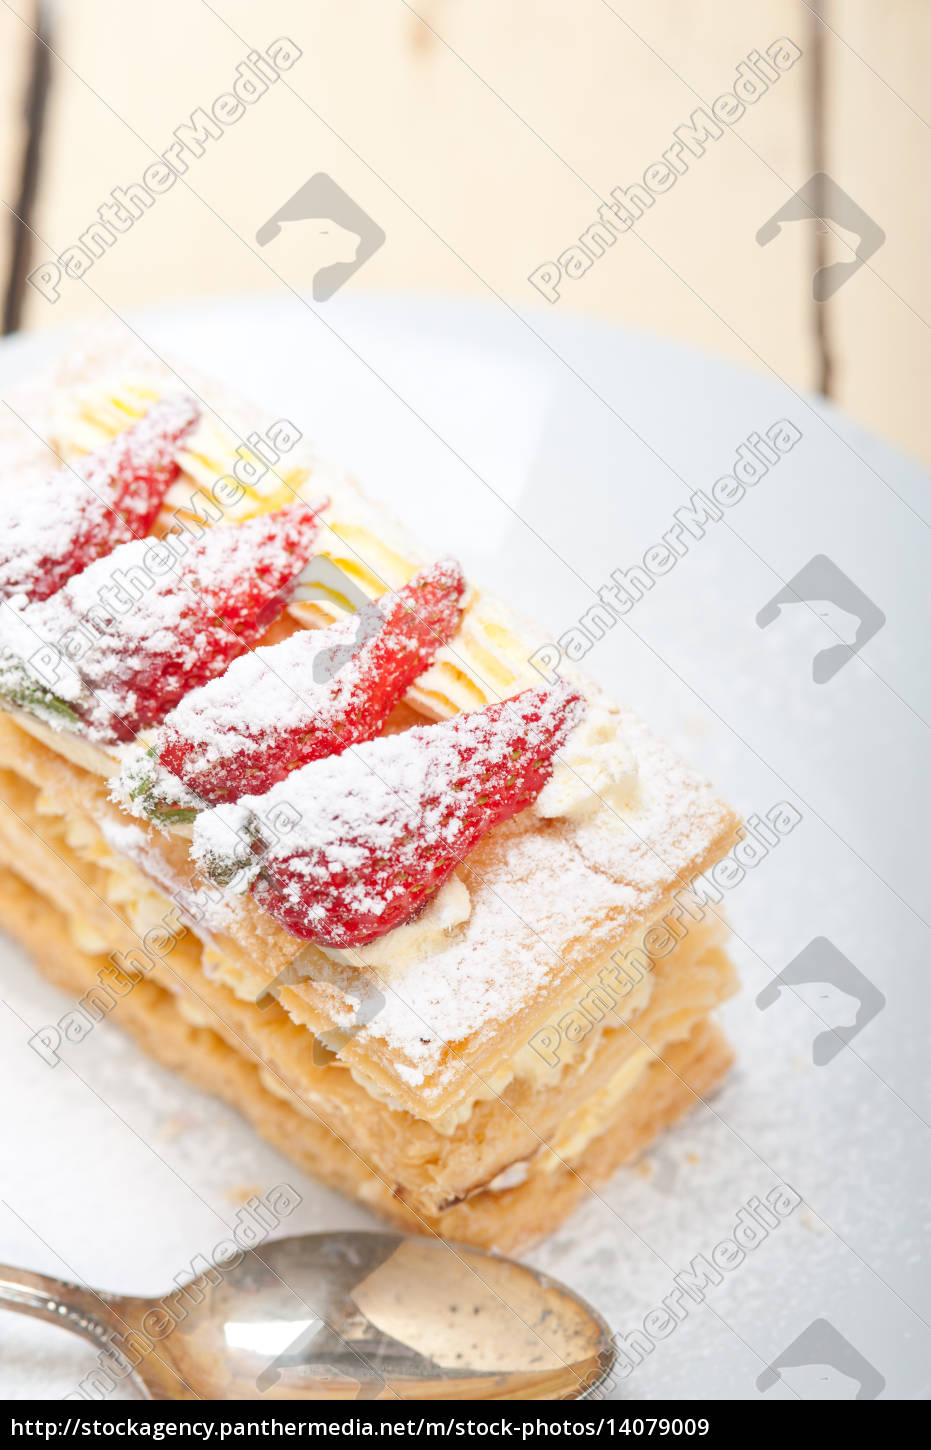 napoleon, strawberry, cake, dessert - 14079009